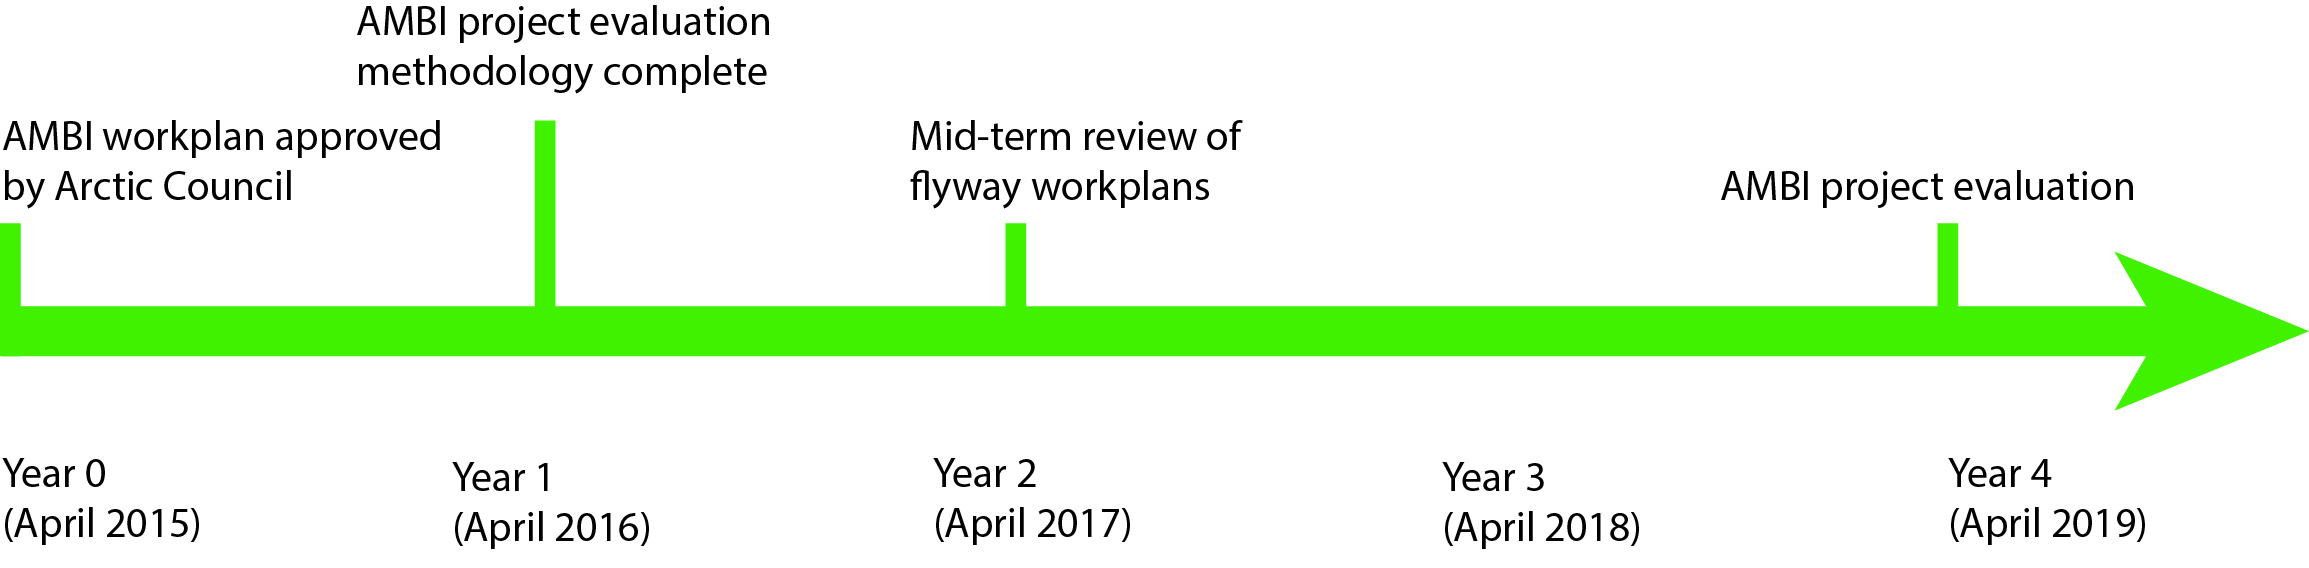 AMBI Flyway implementation timeline